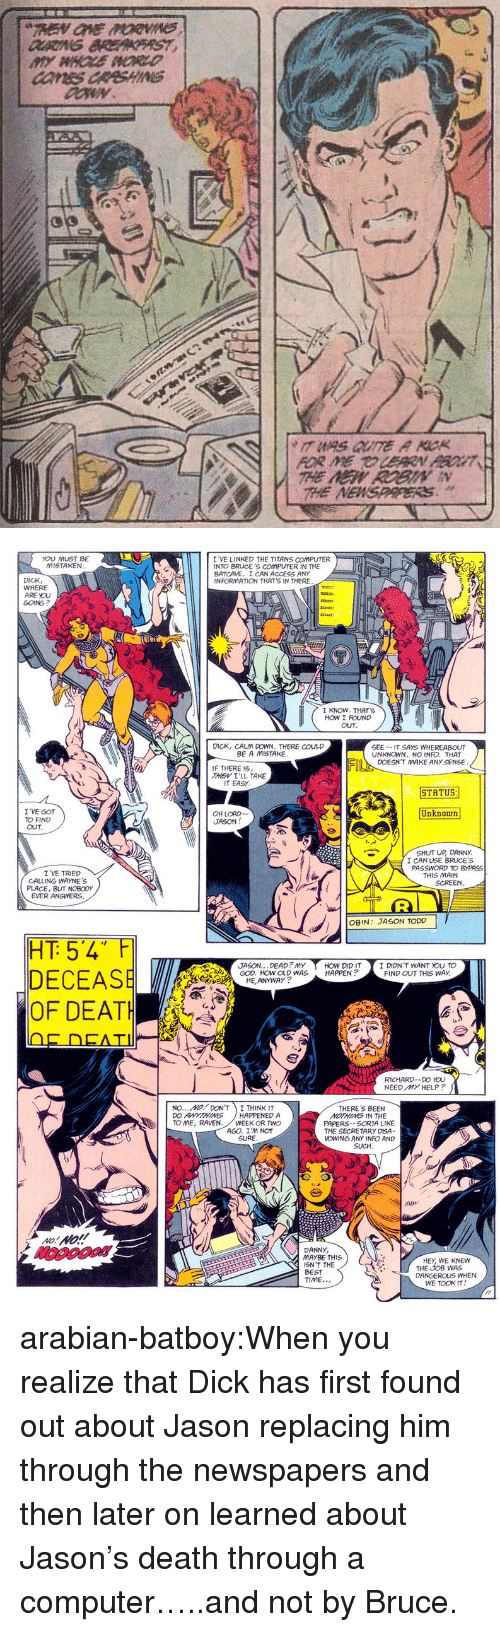 batcave: He  HE NEWSPARERS.   I 'VE LINKED THE TITANS coMPUTER  INTO BRUCE'S COMPUTER IN THE  BATCAVE. I CAN ACCESS ANY  INFORMATION THAT'S IN THERE  YOU MUST BE  MISTAKEN  DICK  WHERE  ARE YOU  GOING?  LEEE  I KNOW. THAT'S  How I ND  OuT  DICK, CALM DOWN. THERE COULD  BE A MISTAKE  SEE--IT SAYS WHEREABOUT  UNKNOWN, NO INFO. THAT  DOESN'T MAKE ANY SENSE  IF THERE 19  가esv 1'LL TAKE  IT EASY  STATUS  I 'VE GOT  TO FIND  OUT  Unknown  OH LORD--  JASON  SHUT UR DANNY.  I CAN USE BRUCE'S  PASSWORD TO BYPASS  I VE TRIED  THIS MAIN  CALLING WAYNE  SCREEN  PLACE,BUT NOBODY  EVER ANSVERS.  OBN: JASON TODD  JASON...DEAD? MYHOW DID IT I DIDN 'T WANT YOU TO  GOD. HOW OLD WAS HAPPEN?  FIND OUT THIS WAY.  HE,ANYWAY  OF DEATH  RICHARD-_ D。ou  NEED MY HELP?  no M1/ DON'T I THINK IT  DO ANYTHINGHAPPENED A  TO ME, RAVEN. WEEK OR TWO  THERE'S BEEN  MOTHING IN THE  PAPERS- SORTA LIKE  THE SECRETARY DSA  VOWING ANY INFO AND  SUCH  AGO. I'M NOT  SURE  DANNY  MAYBE THIS  İSN'T THE  BEST  TIME...  HEY, WE KNEW  THE JOB WAS  DANGEROUS WHEN  WE TOOK IT arabian-batboy:When you realize that Dick has first found out about Jason replacing him through the newspapers and then later on learned about Jason's death through a computer…..and not by Bruce.